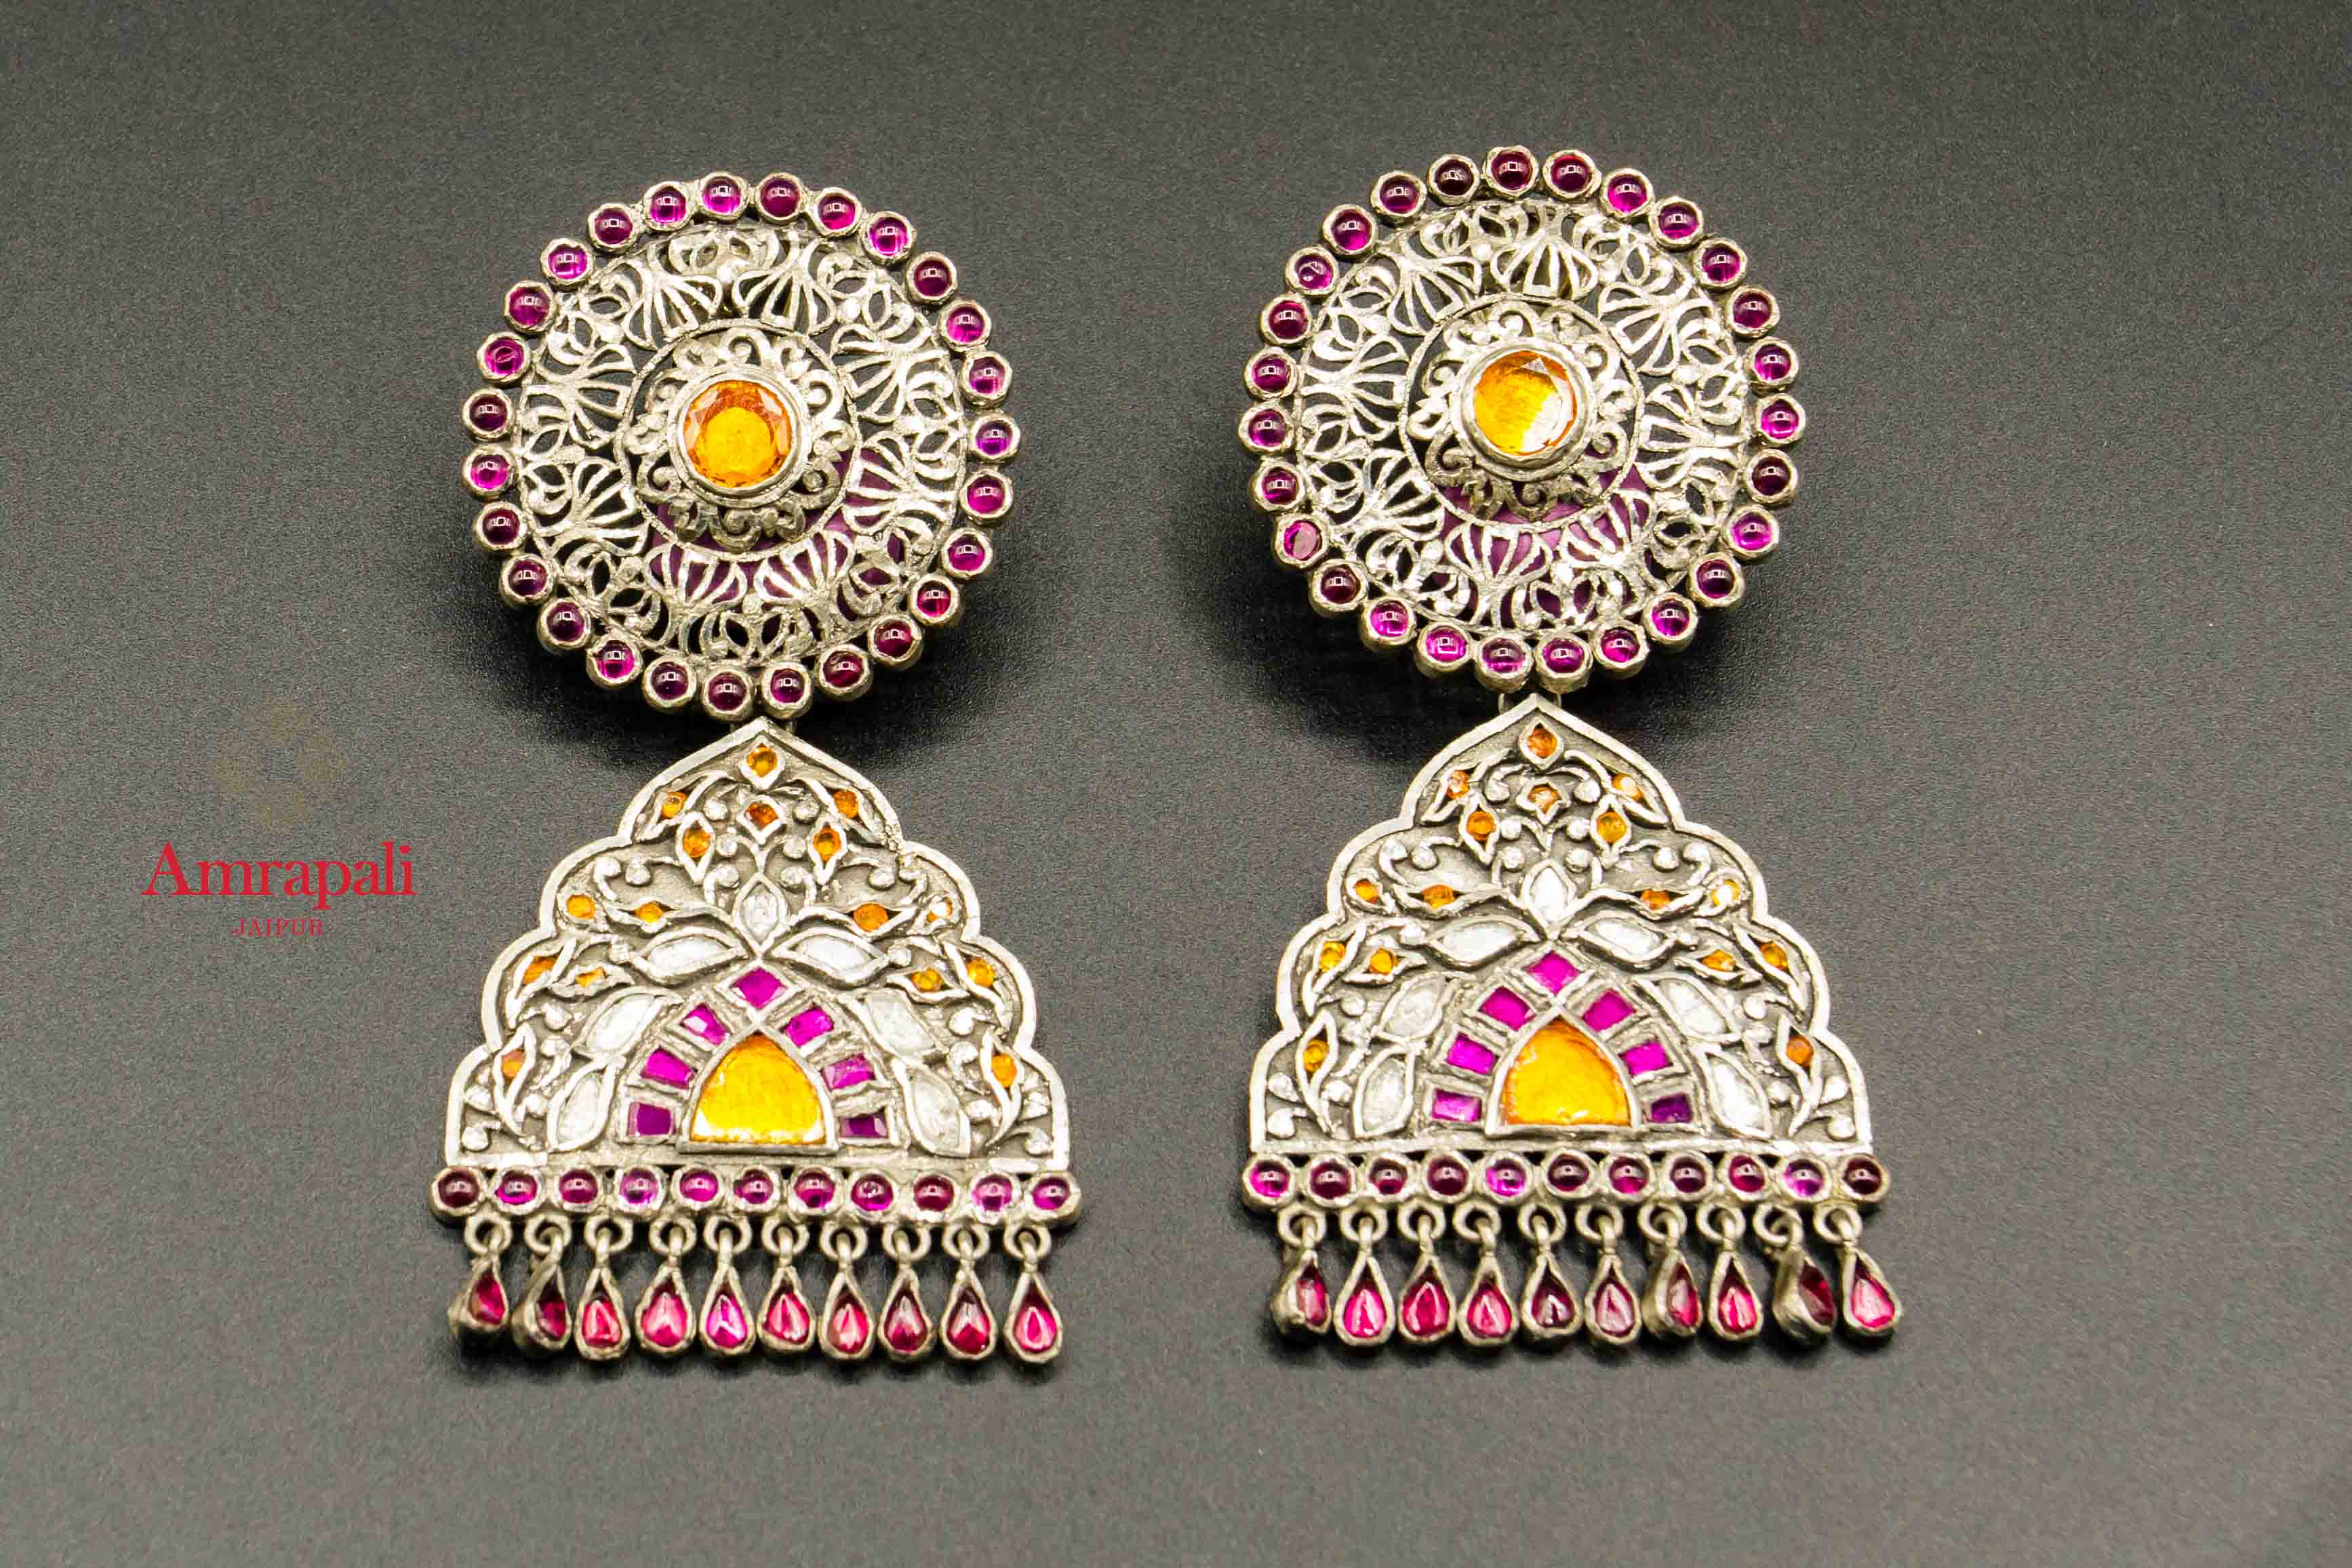 Shop Amrapali pink and yellow glass silver earrings online in USA. Raise your traditional fashion quotient on special occasions with exquisite Indian jewelry from Pure Elegance Indian clothing store in USA. Enhance your look with silver gold plated jewelry, fashion jewelry available online.-flatlay